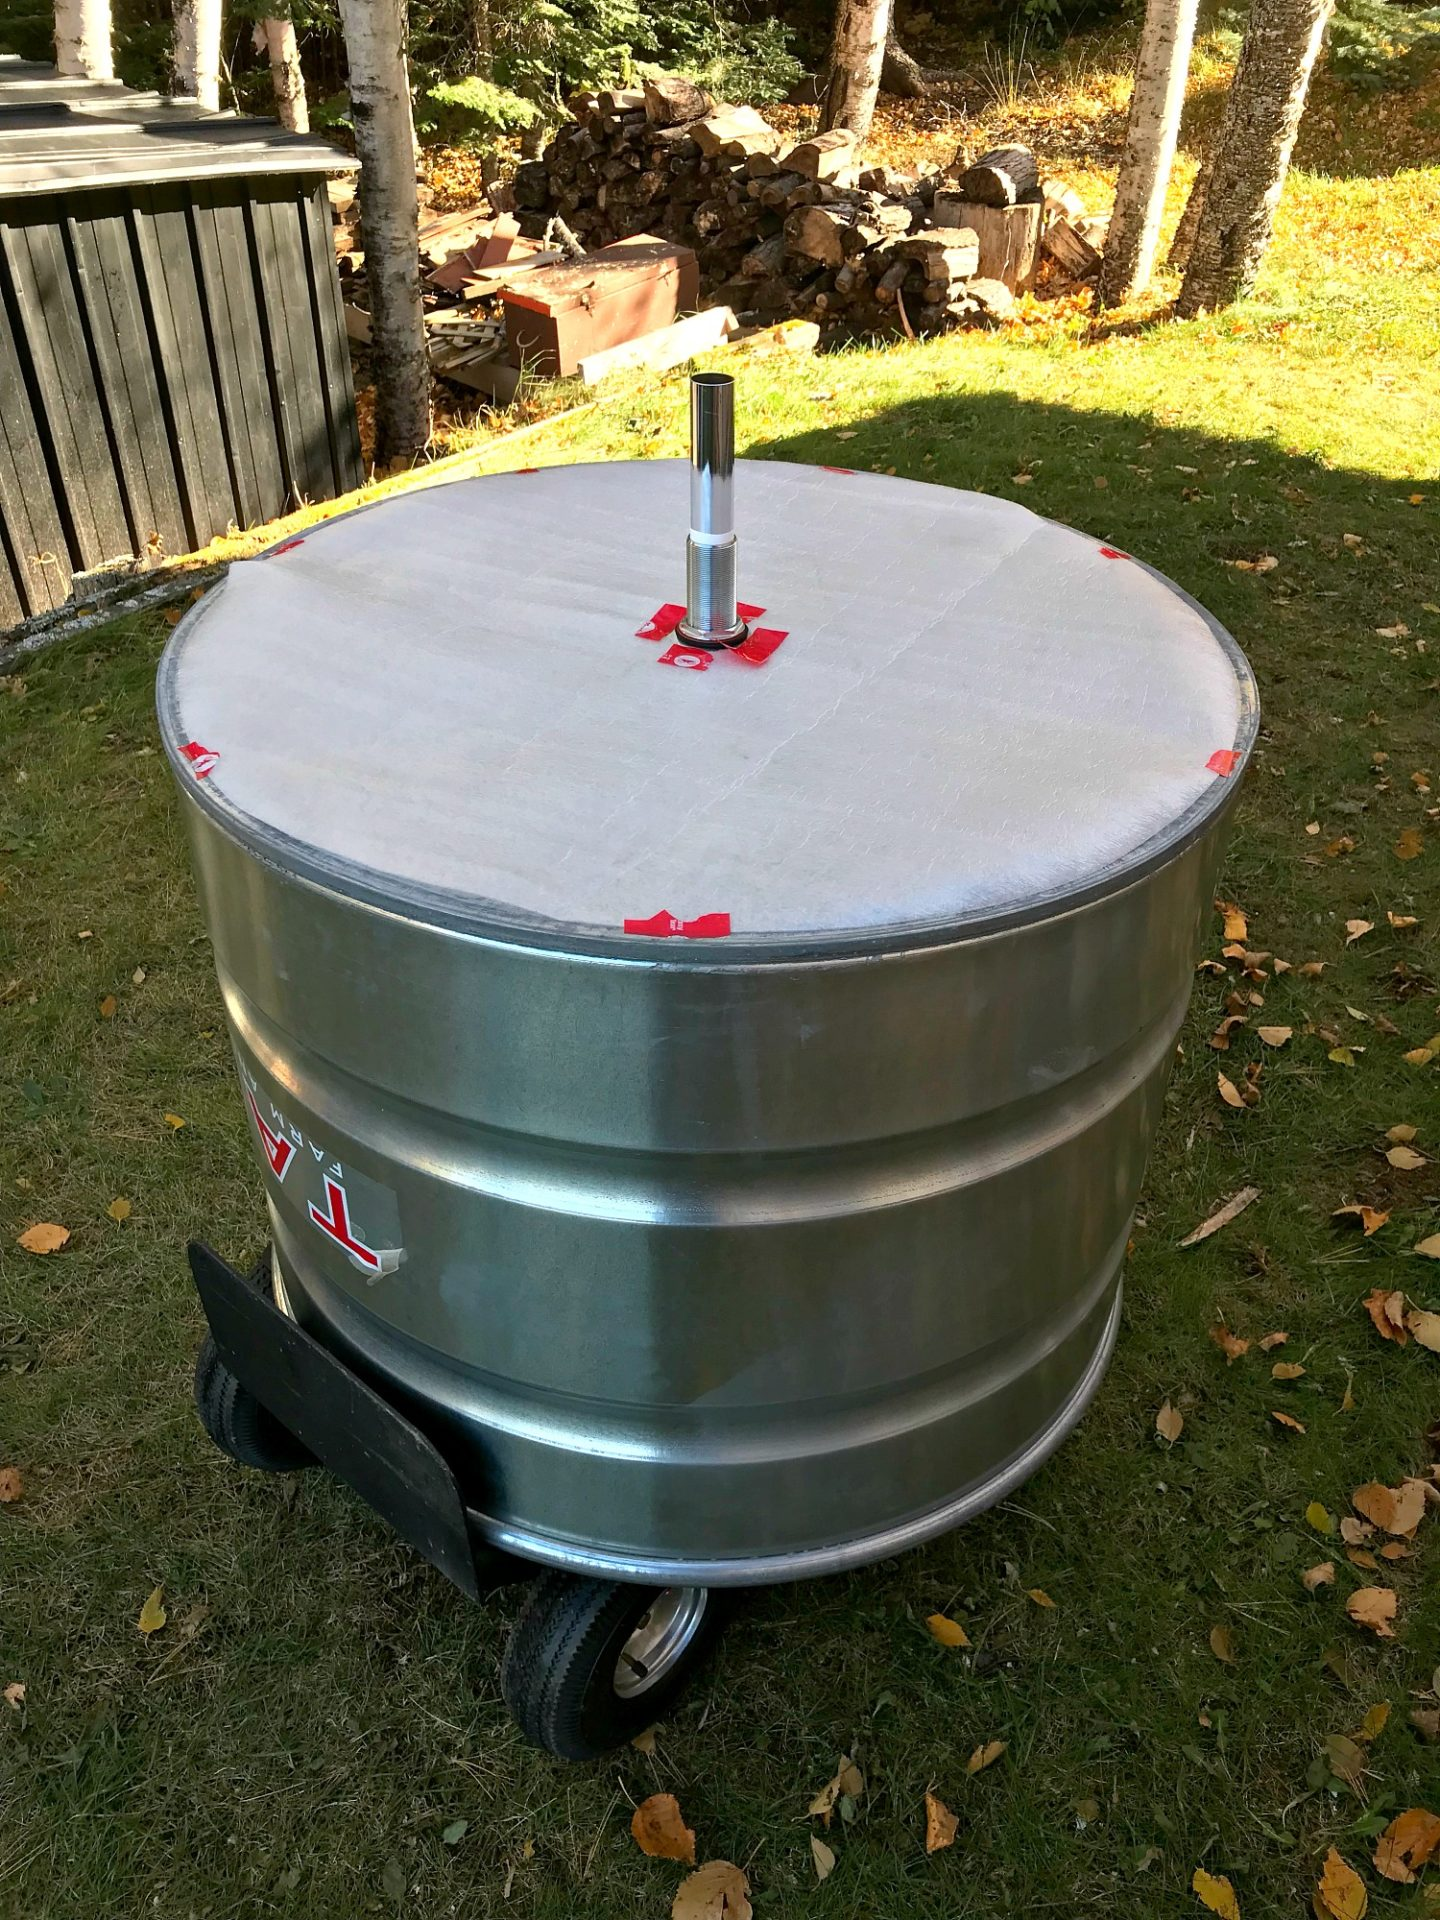 Learn How to Make a DIY Stock Tank Shower Using a Stock Tank from Tarter USA #stocktank #diy #bunkie #bunkiebathroom #diyhomedecor